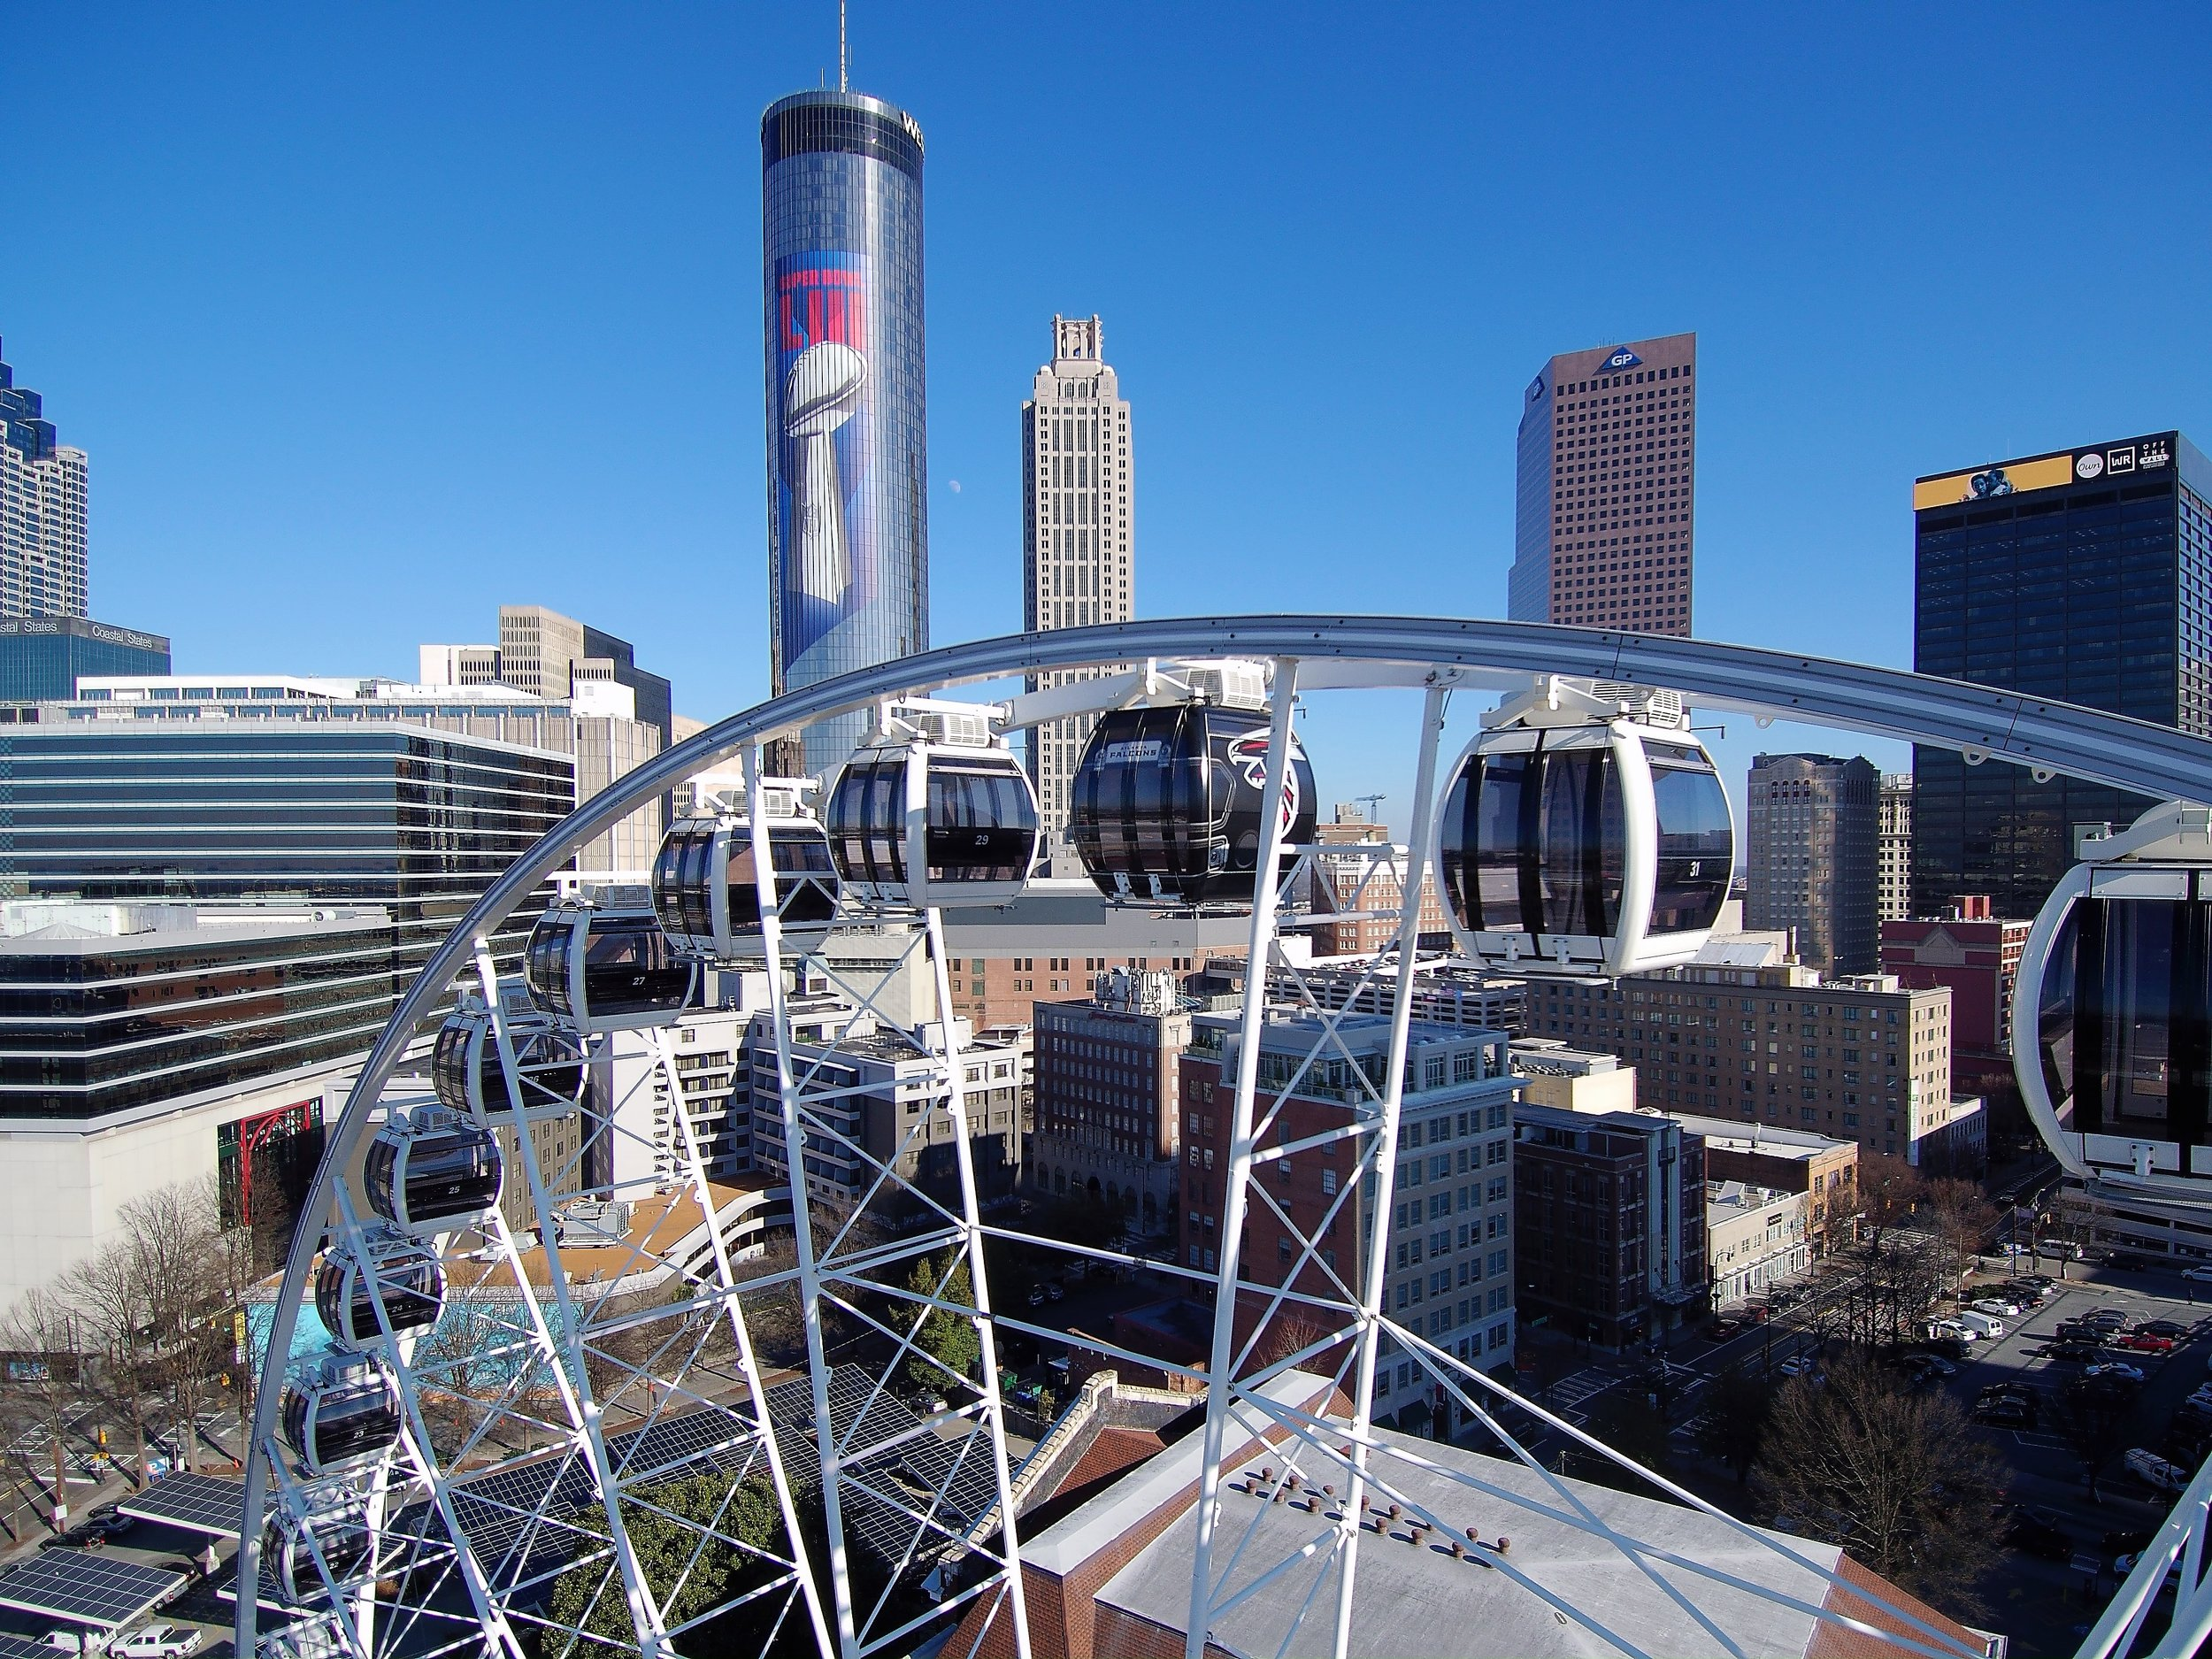 Interested in branding SkyView Atlanta for your next big event? - E-mail events@skyviewatlanta.com for more information.